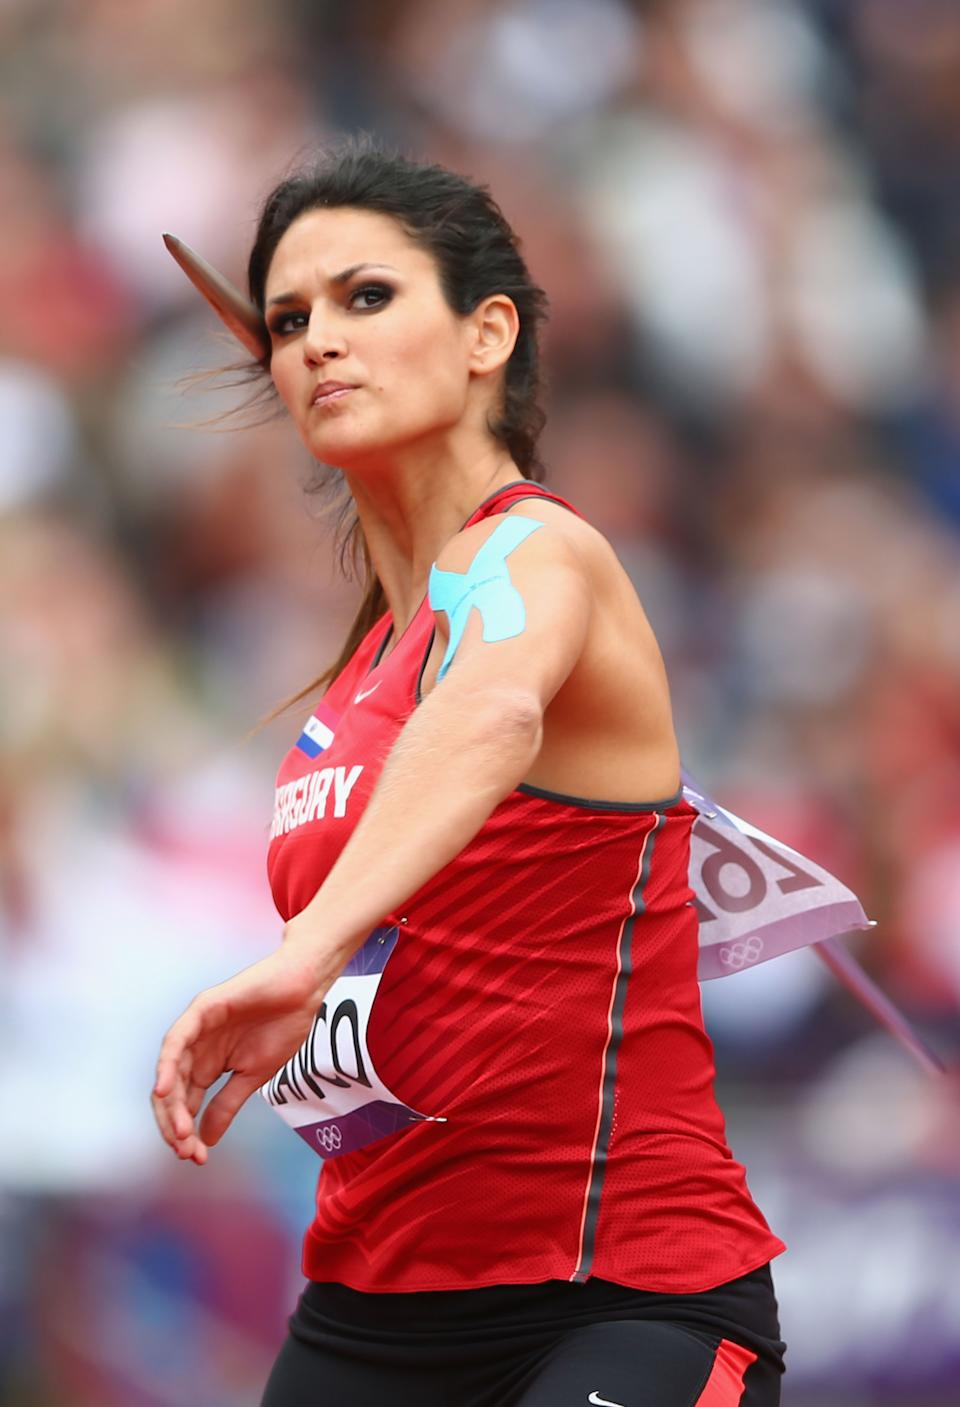 """<a href=""""http://sports.yahoo.com/olympics/track-field/leryn-franco-1086669/"""" data-ylk=""""slk:Leryn Franco"""" class=""""link rapid-noclick-resp"""">Leryn Franco</a> of Paraguay competes in the Women's Javelin Throw Qualification on Day 11 of the London 2012 Olympic Games. Franco finished 18th in the qualifying round with a throw of 51.45m and failed to make it to the final. (Photo by Michael Steele/Getty Images)"""